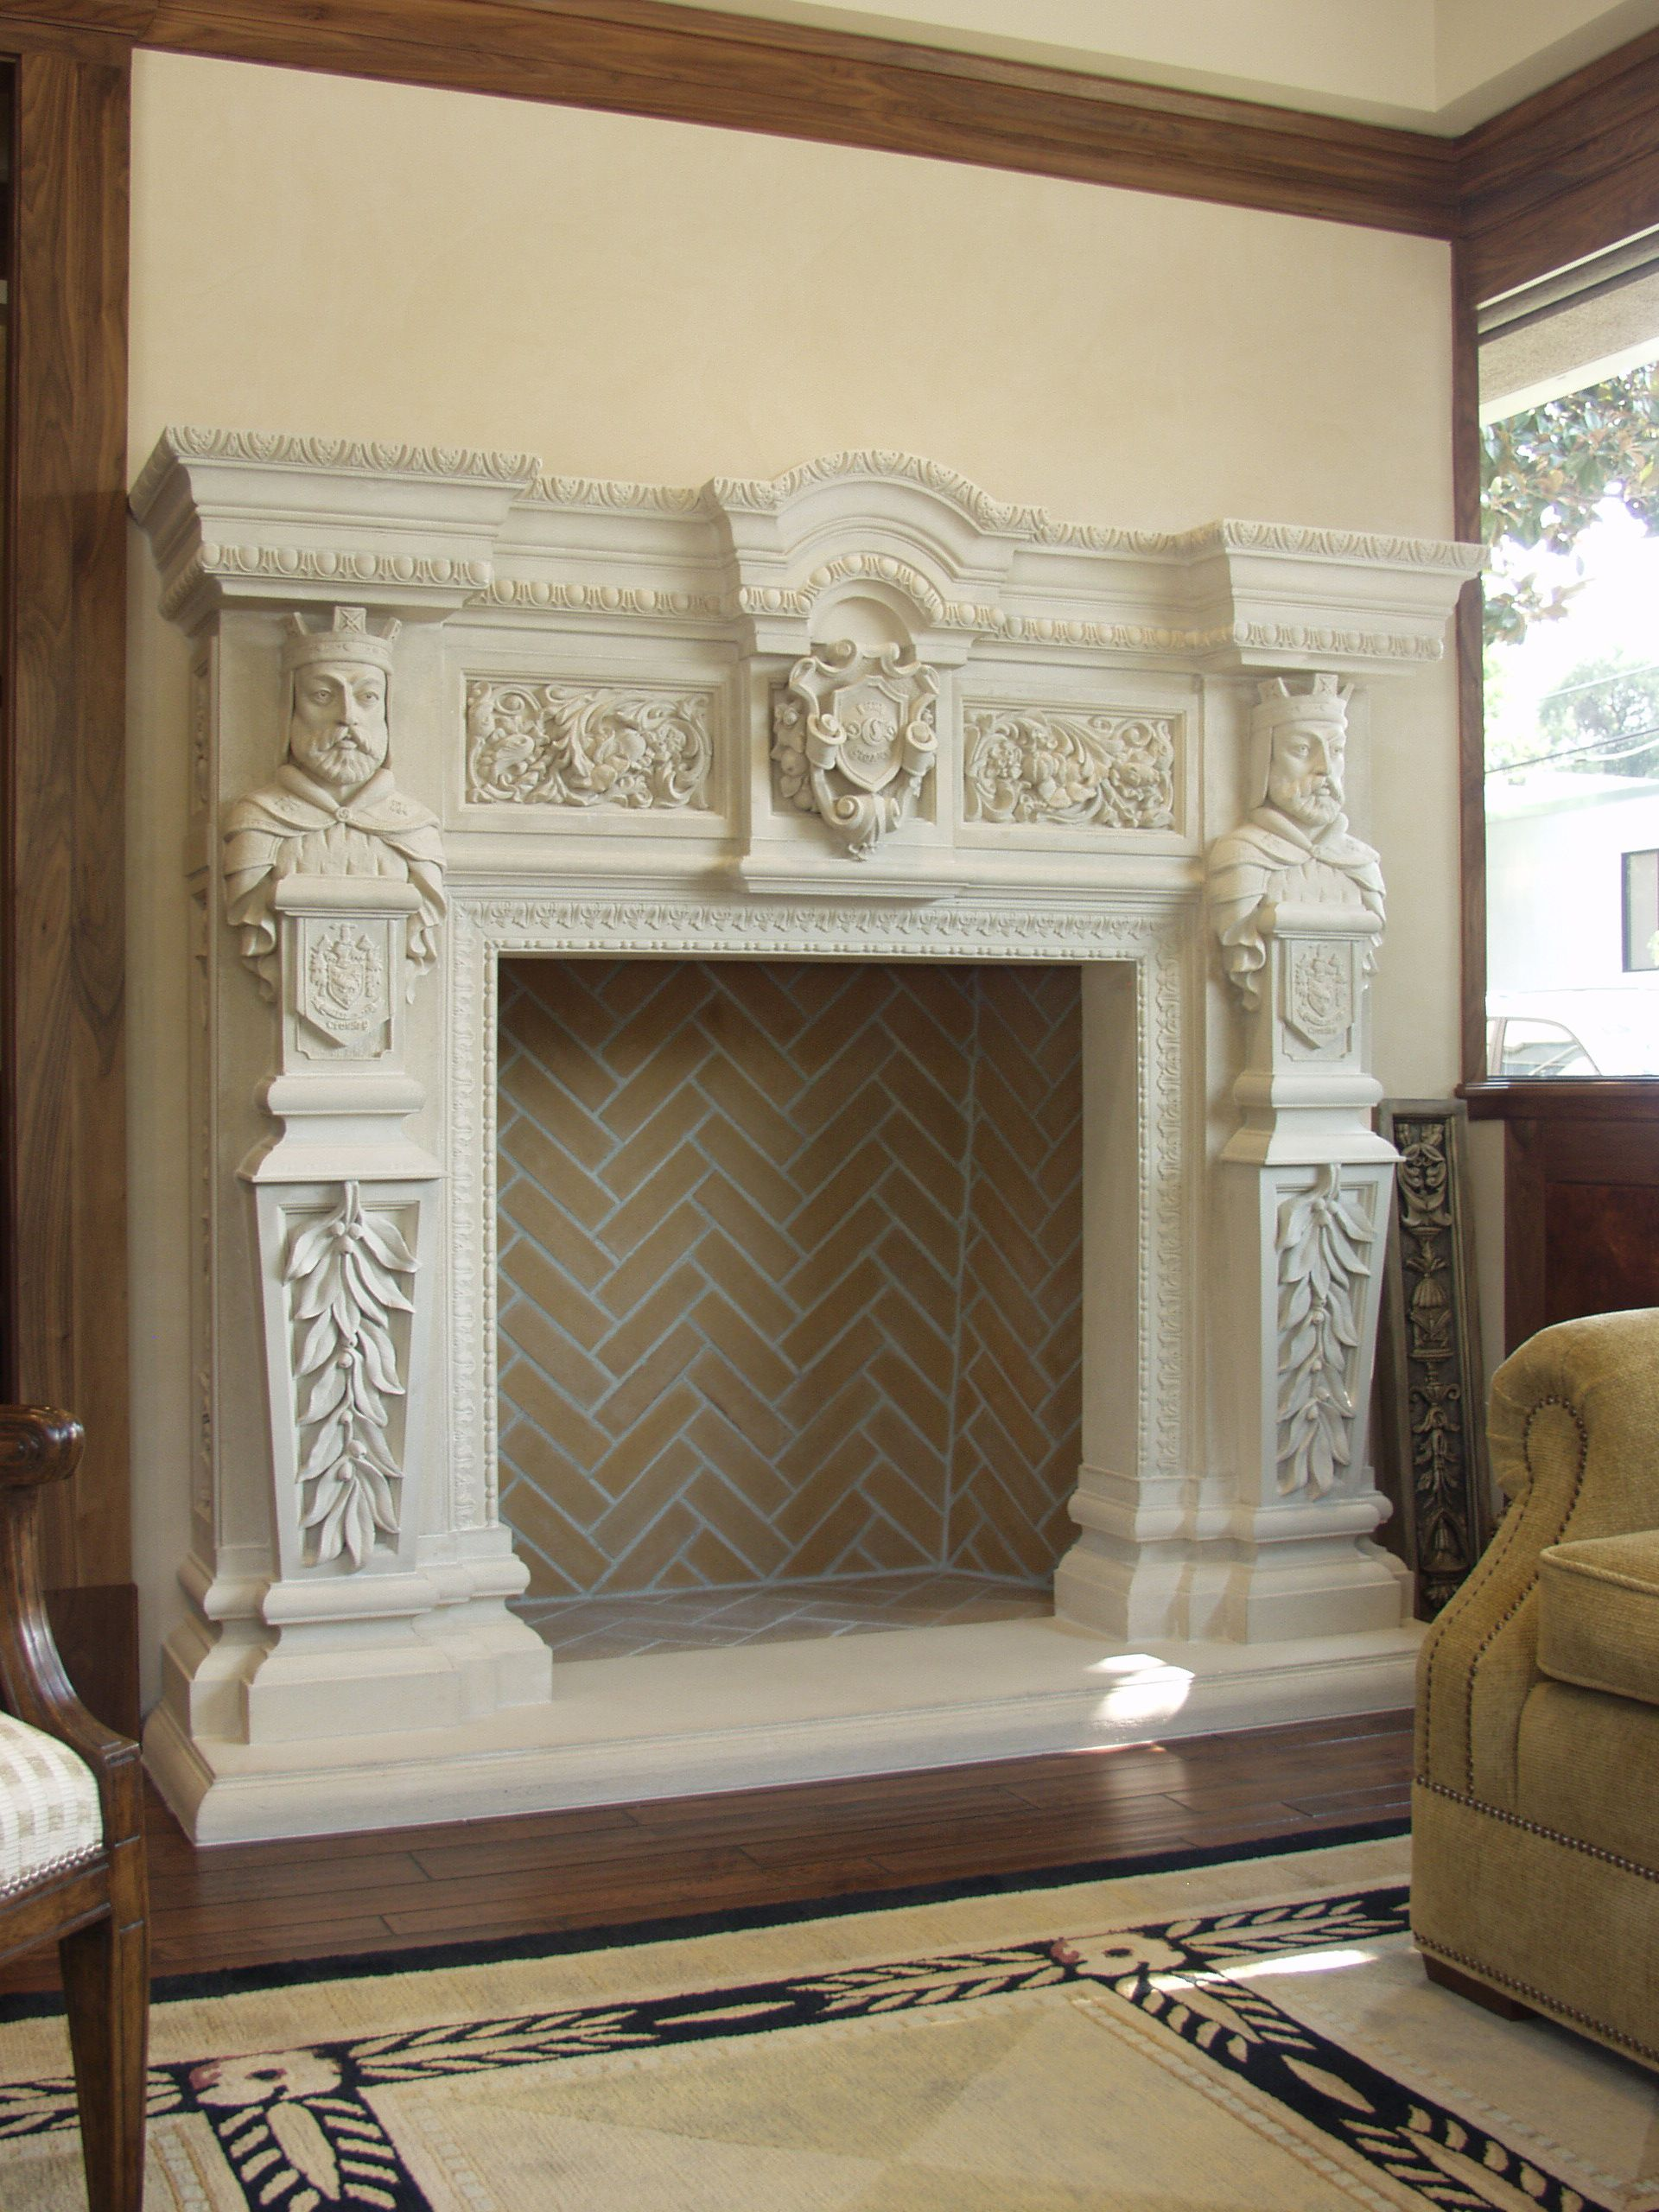 fireplace interiror home aefabaaafca surround file with exteriro and unnamed mantel concrete design